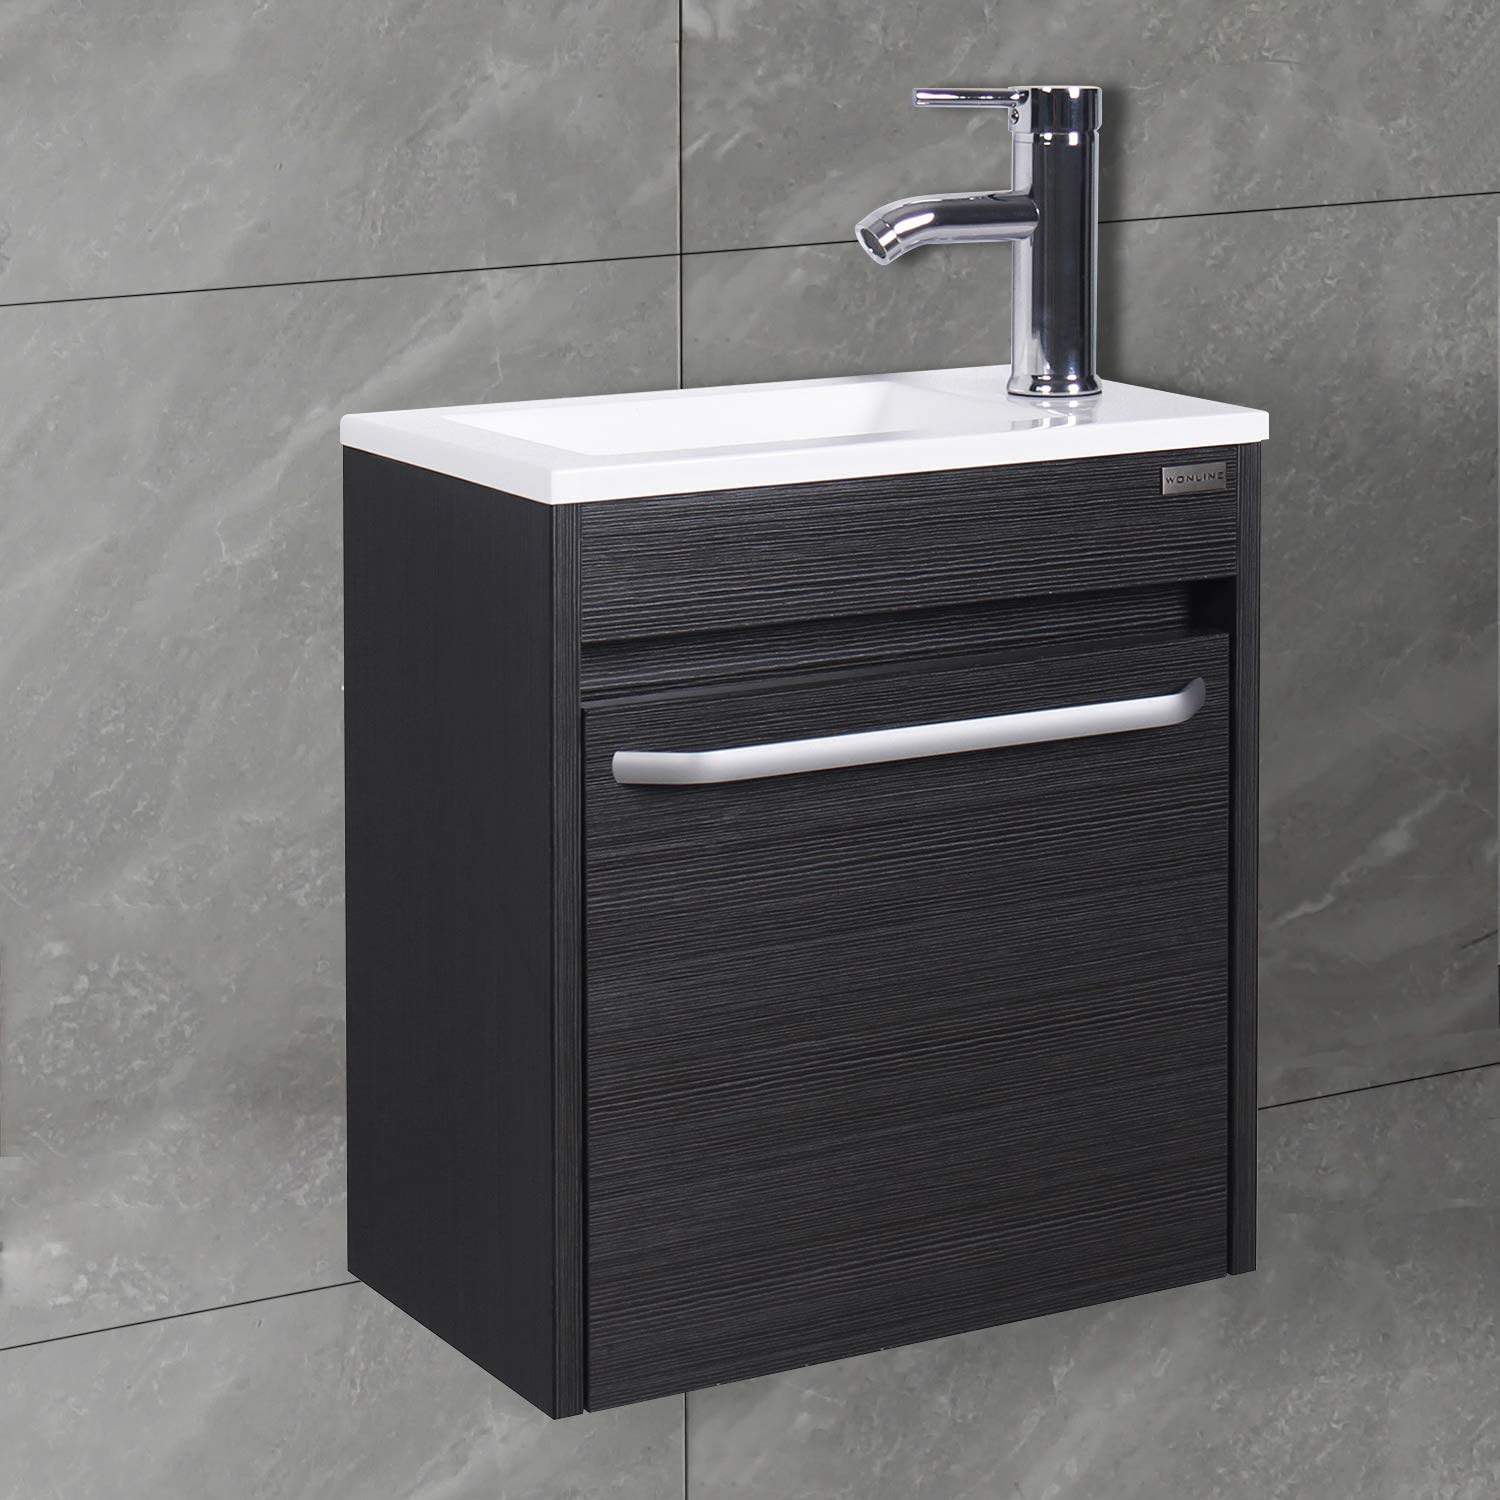 Buy Wonline 16 Bathroom Vanity Sink Combo For Small Space Black Wall Mounted Cabinet Set Design White Resin Basin Sink Top Chrome Faucet And Drain Online In Turkey B08d3f5xkm